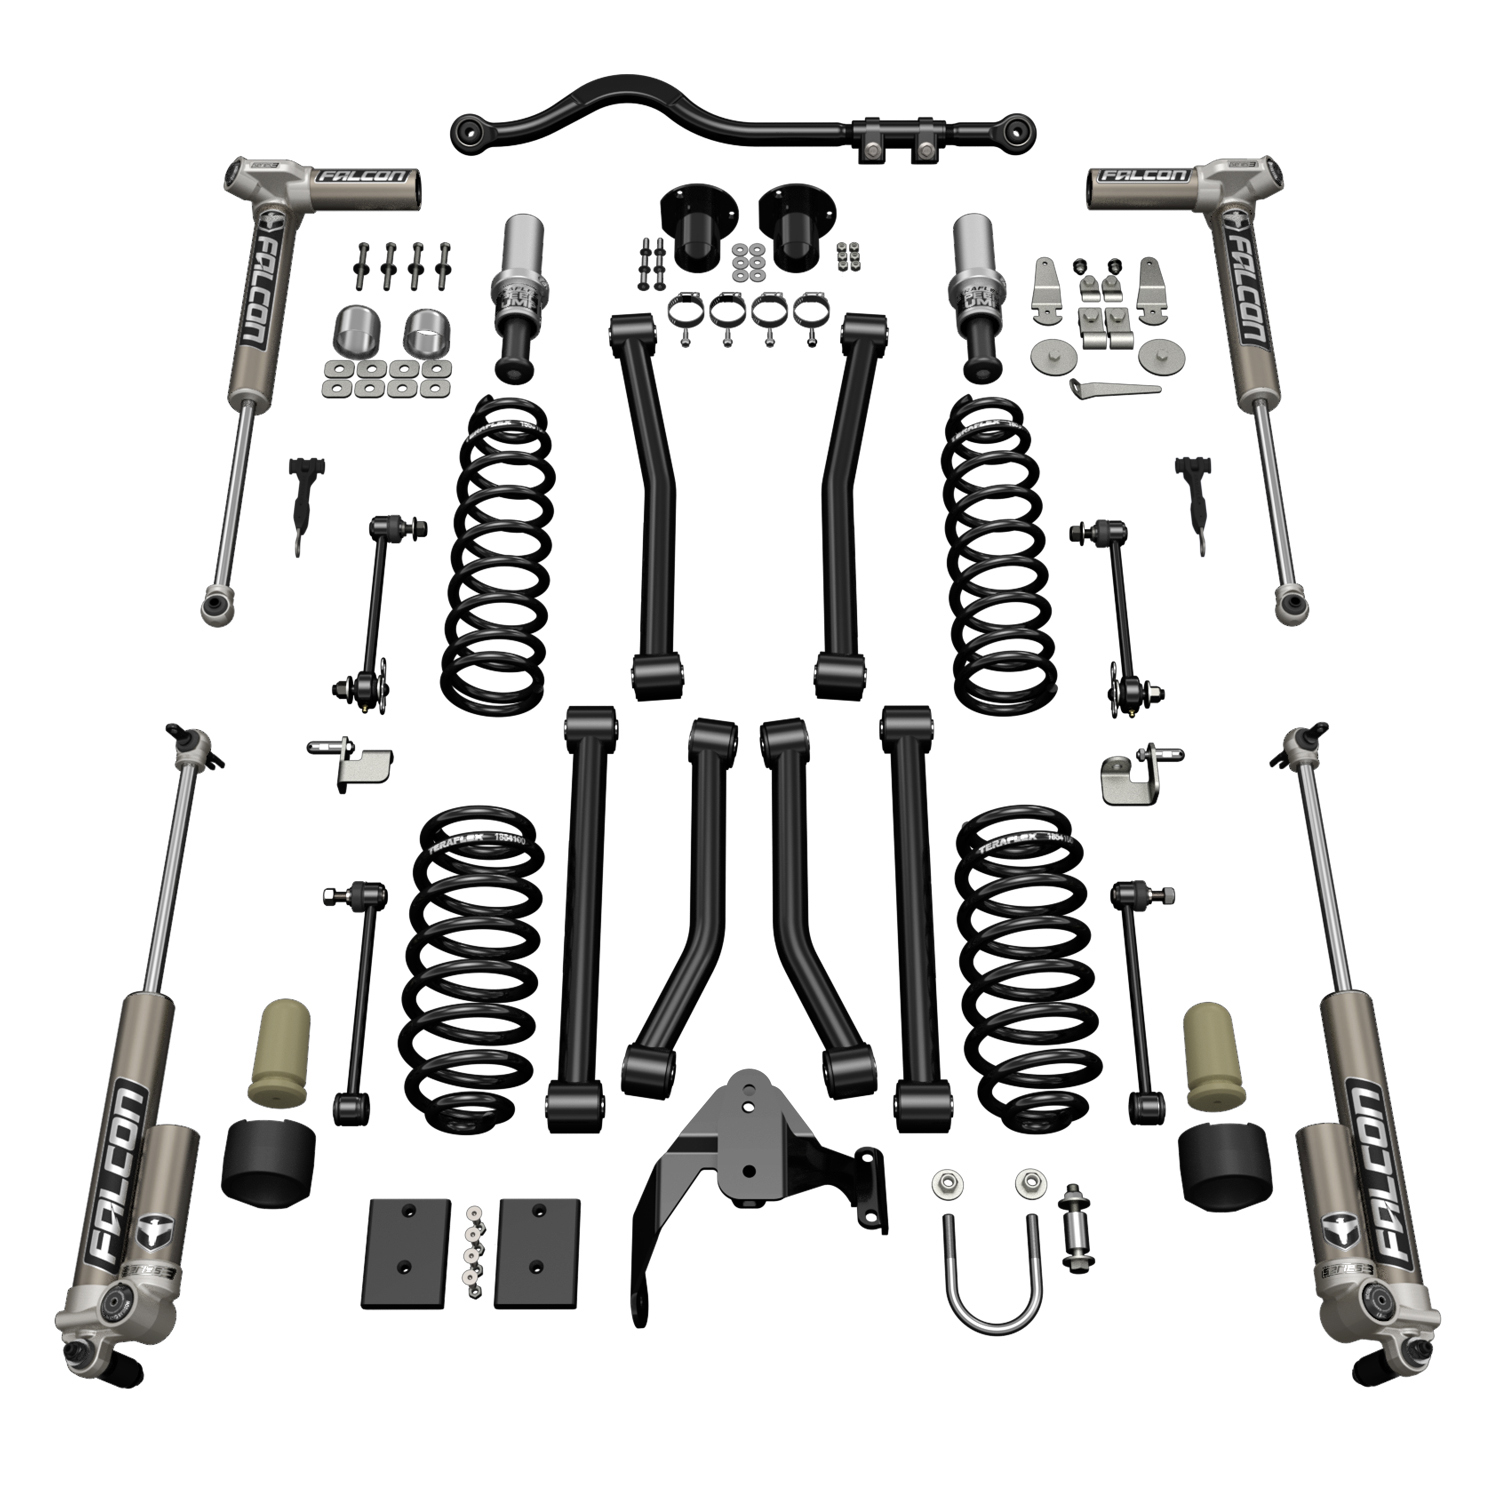 Teraflex 3in Sport S/T3 Suspension System w/ 3.1 Falcon Shocks - JK 4dr